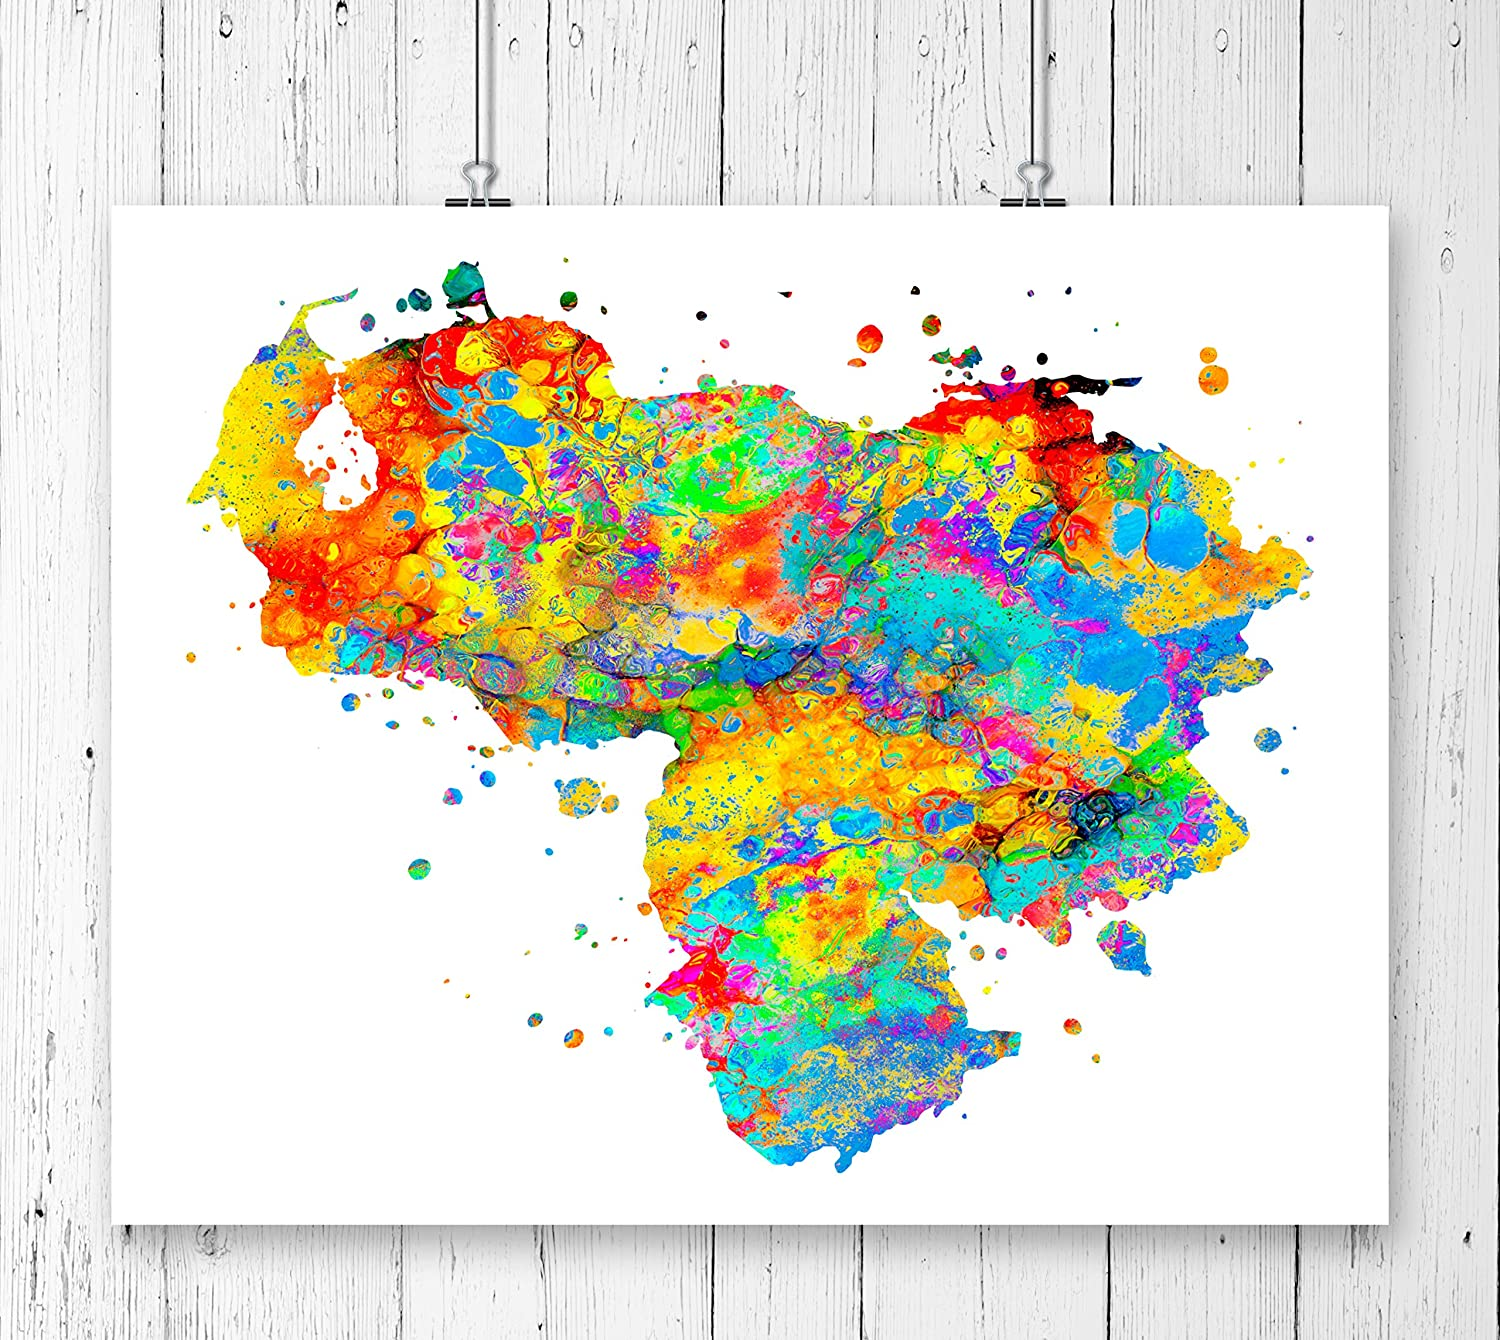 Amazon.com: Venezuela Map Art Print, Poster, Wall Art ... on map of guiana, map of bahamas, map of south america, map of world, map of colombia, map of nicaragua, map of honduras, map of ecuador, map of canada, map of aruba, map of switzerland, map of puerto rico, map of romania, map of paraguay, map of yemen, map of caracas, map of bolivia, map of greece, map of bonaire,